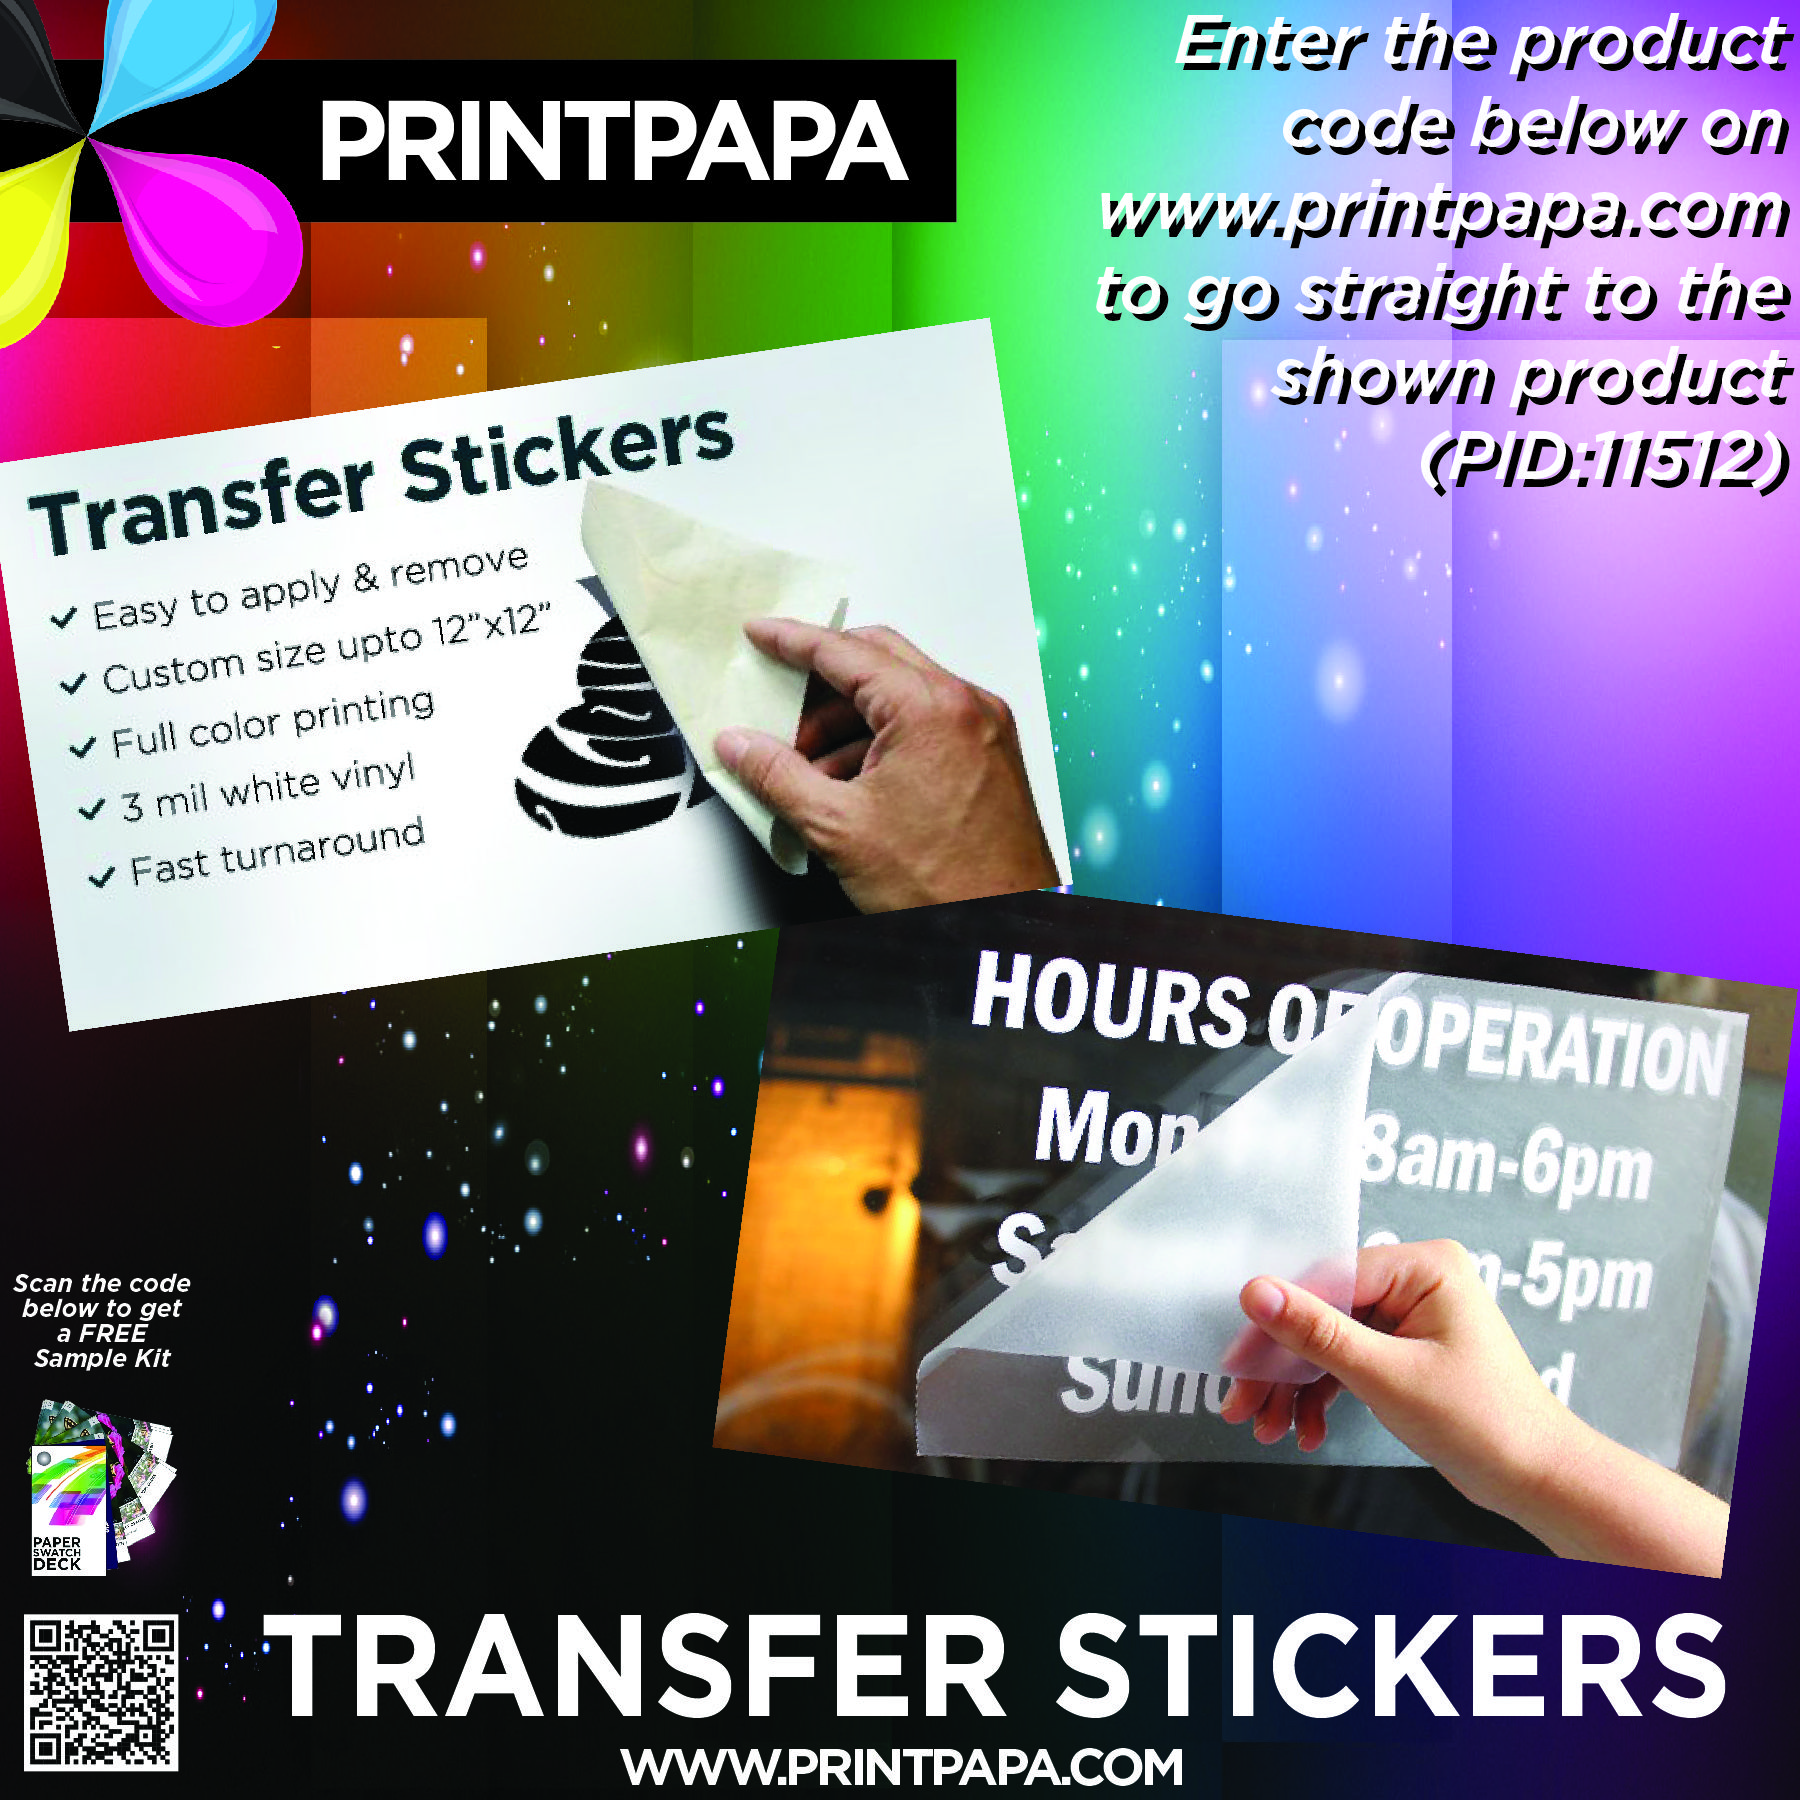 Our transfer stickers are made by printing your design in full color on 3 mil white